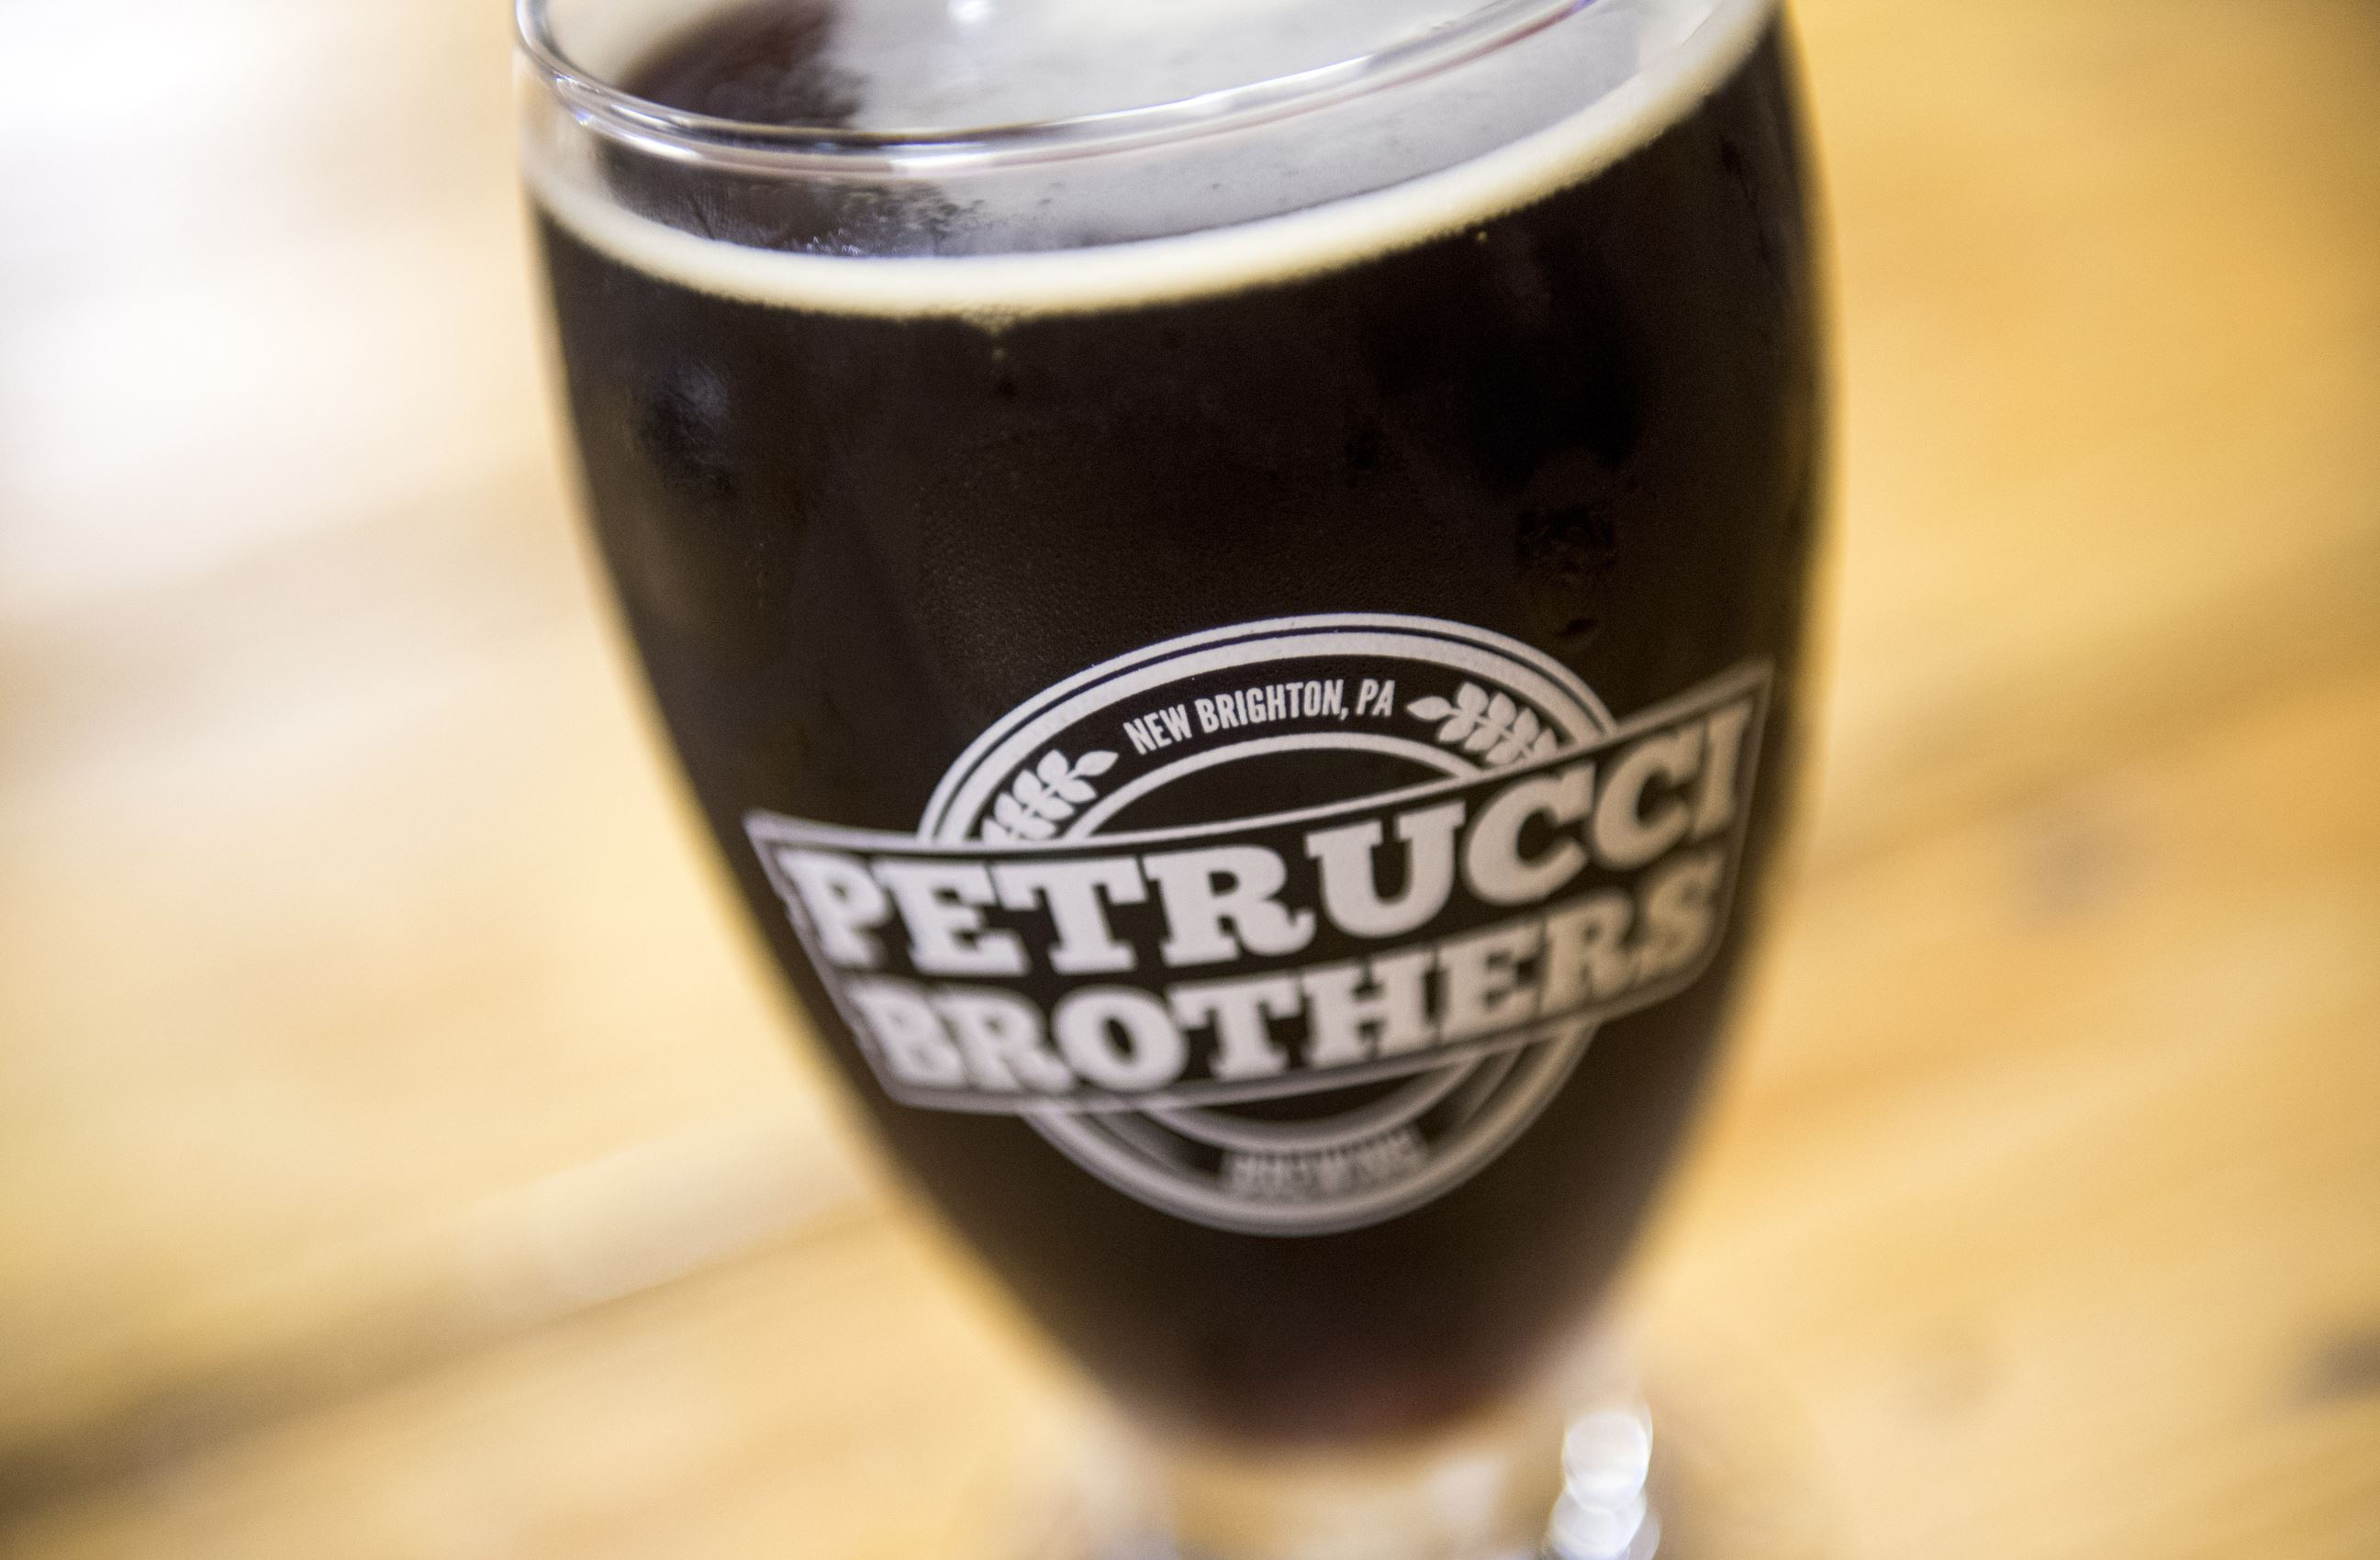 20170505scPetrucci-01-6 A smoked porter at Petrucci Brothers Brewing.